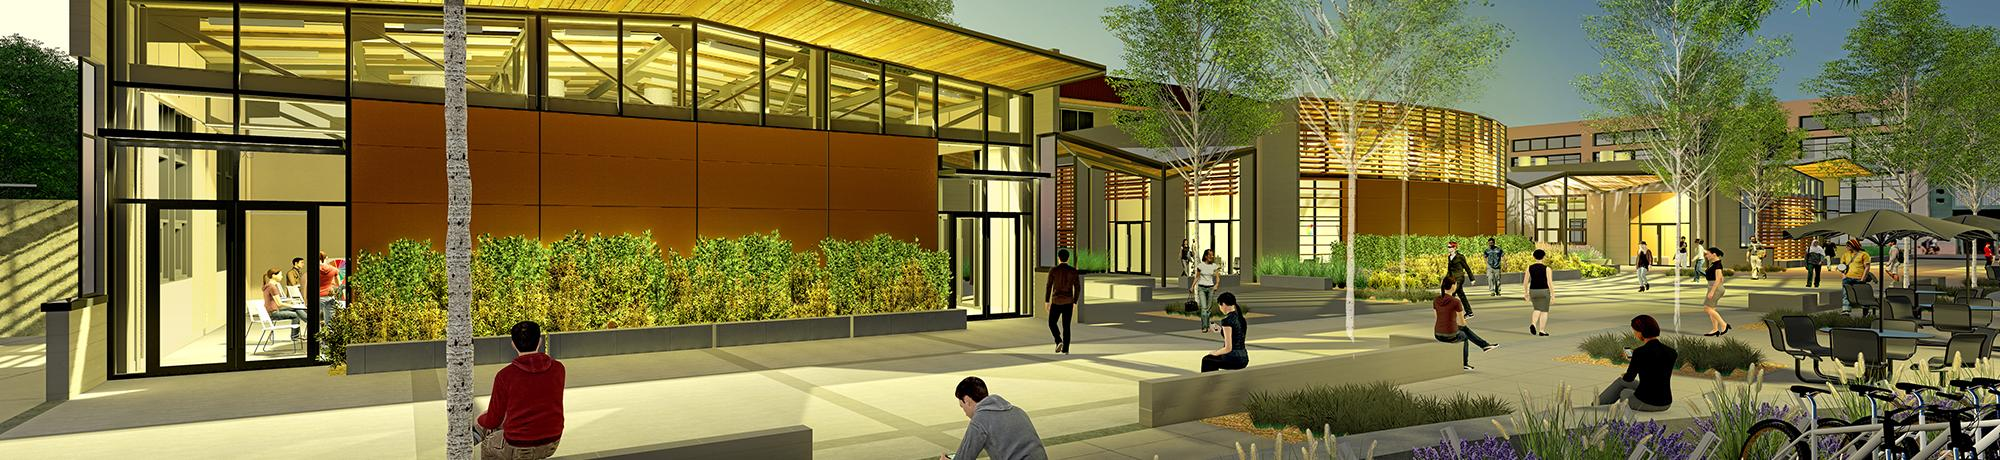 Renderings of renovated Walker Hall UC Davis